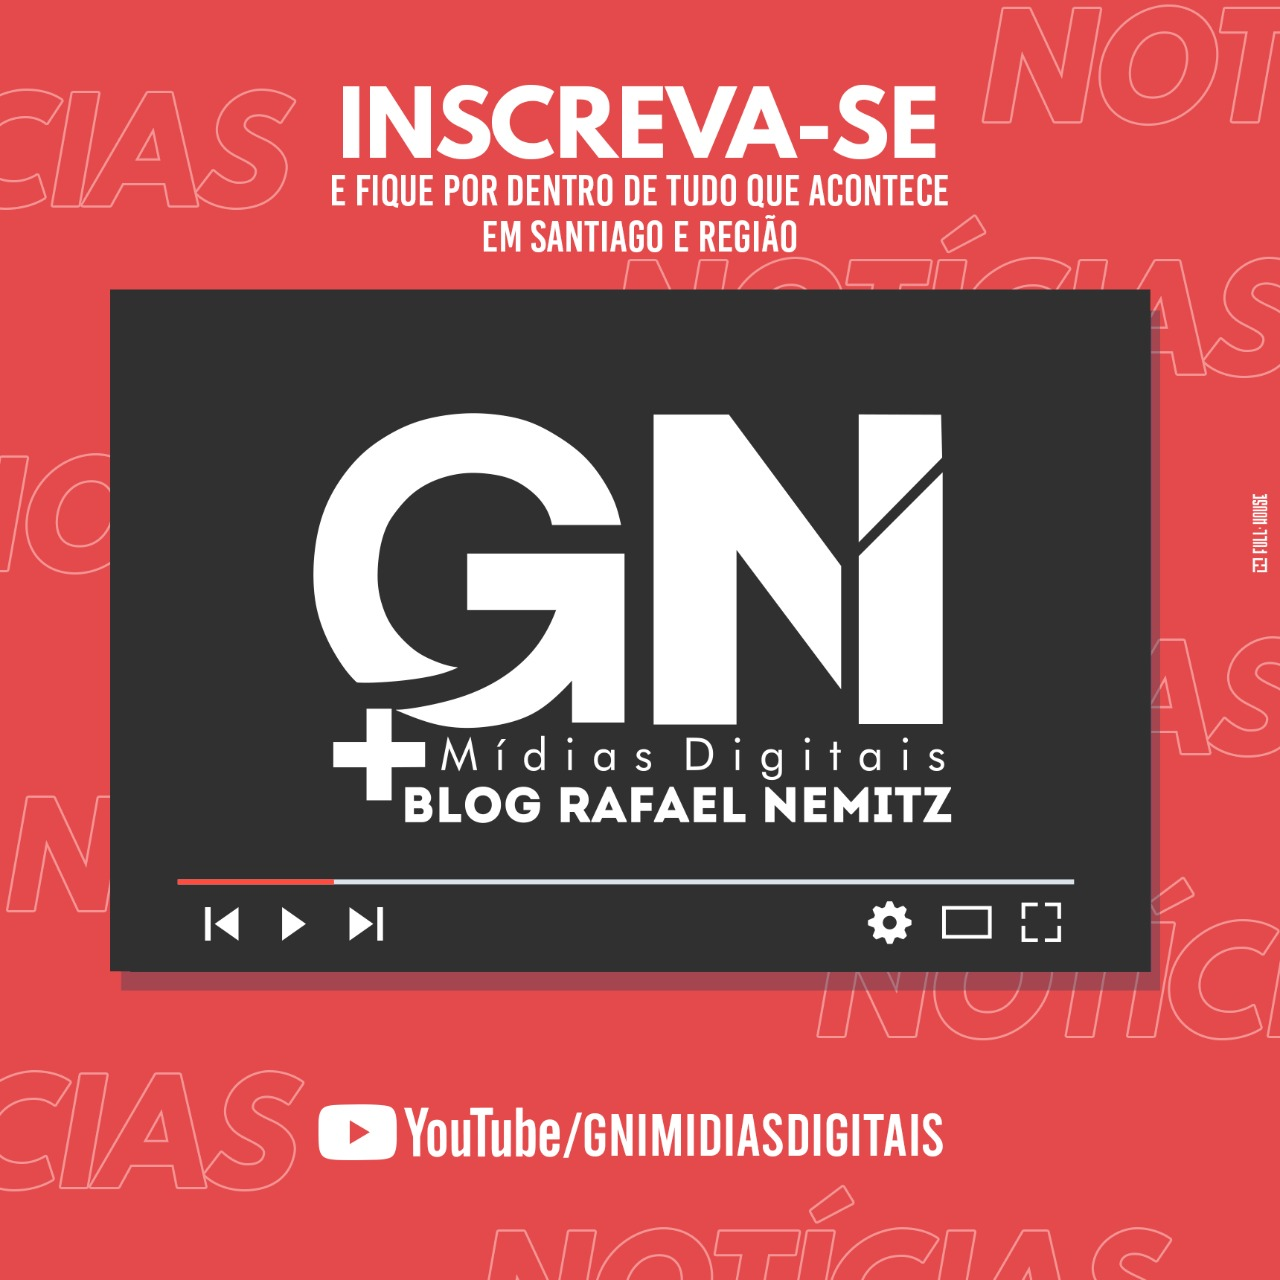 Blog Rafael Nemitz no Youtube